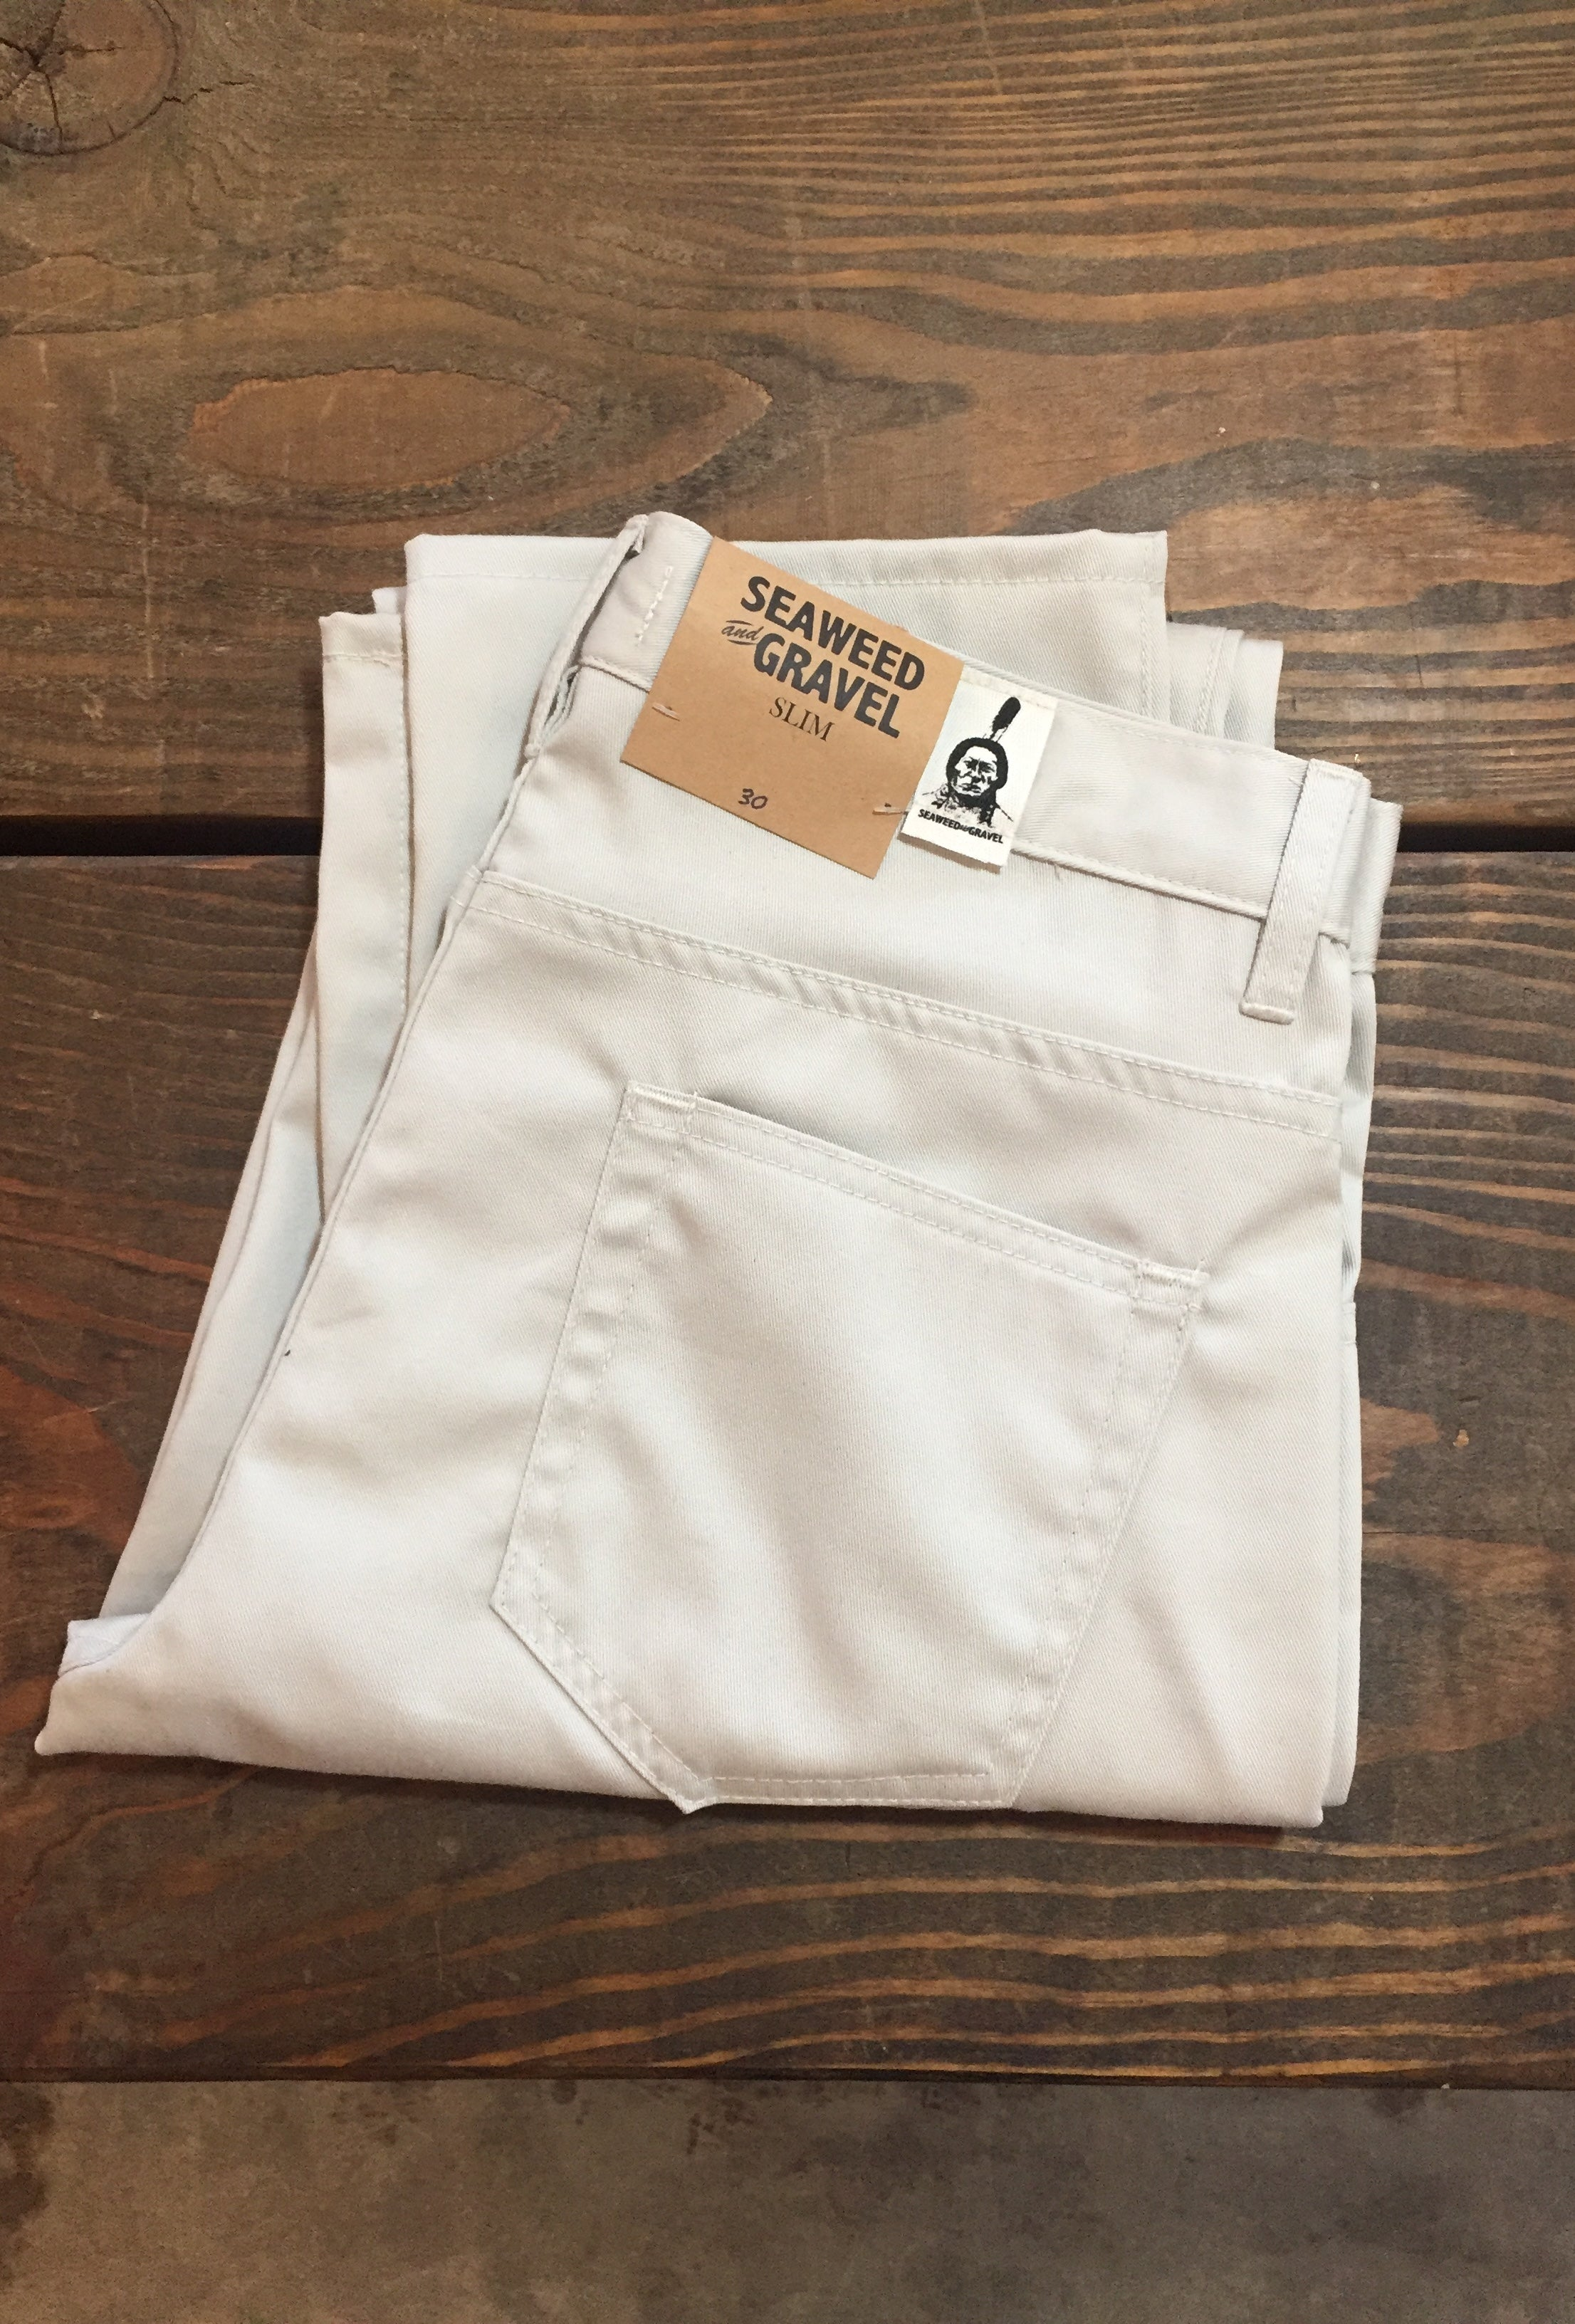 Twill Seaweed and Gravel Mens Slim Jeans Vintage Ivory